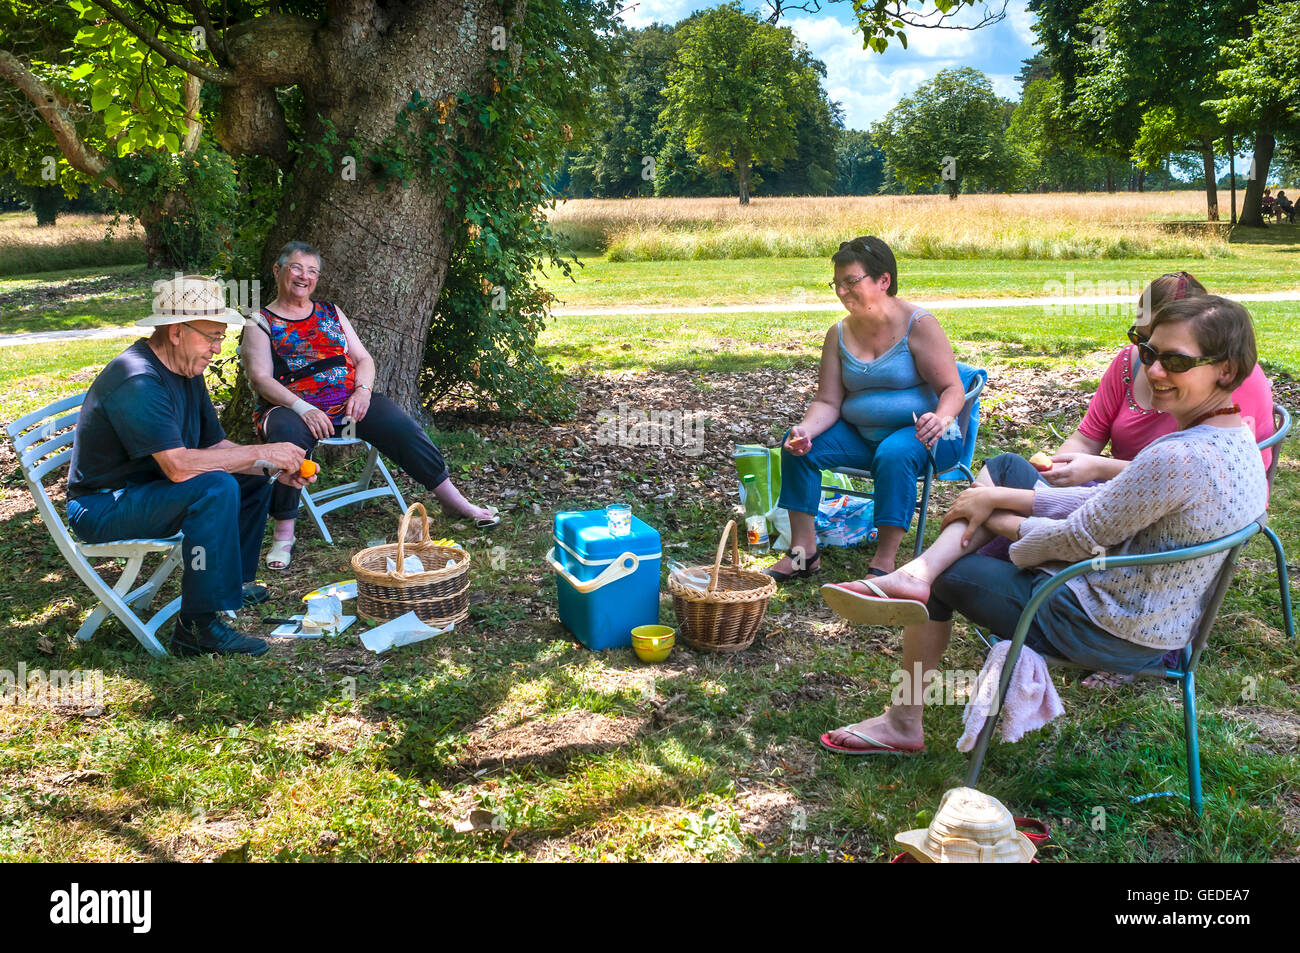 Family picnic under the shade of trees - France Stock Photo - Alamy